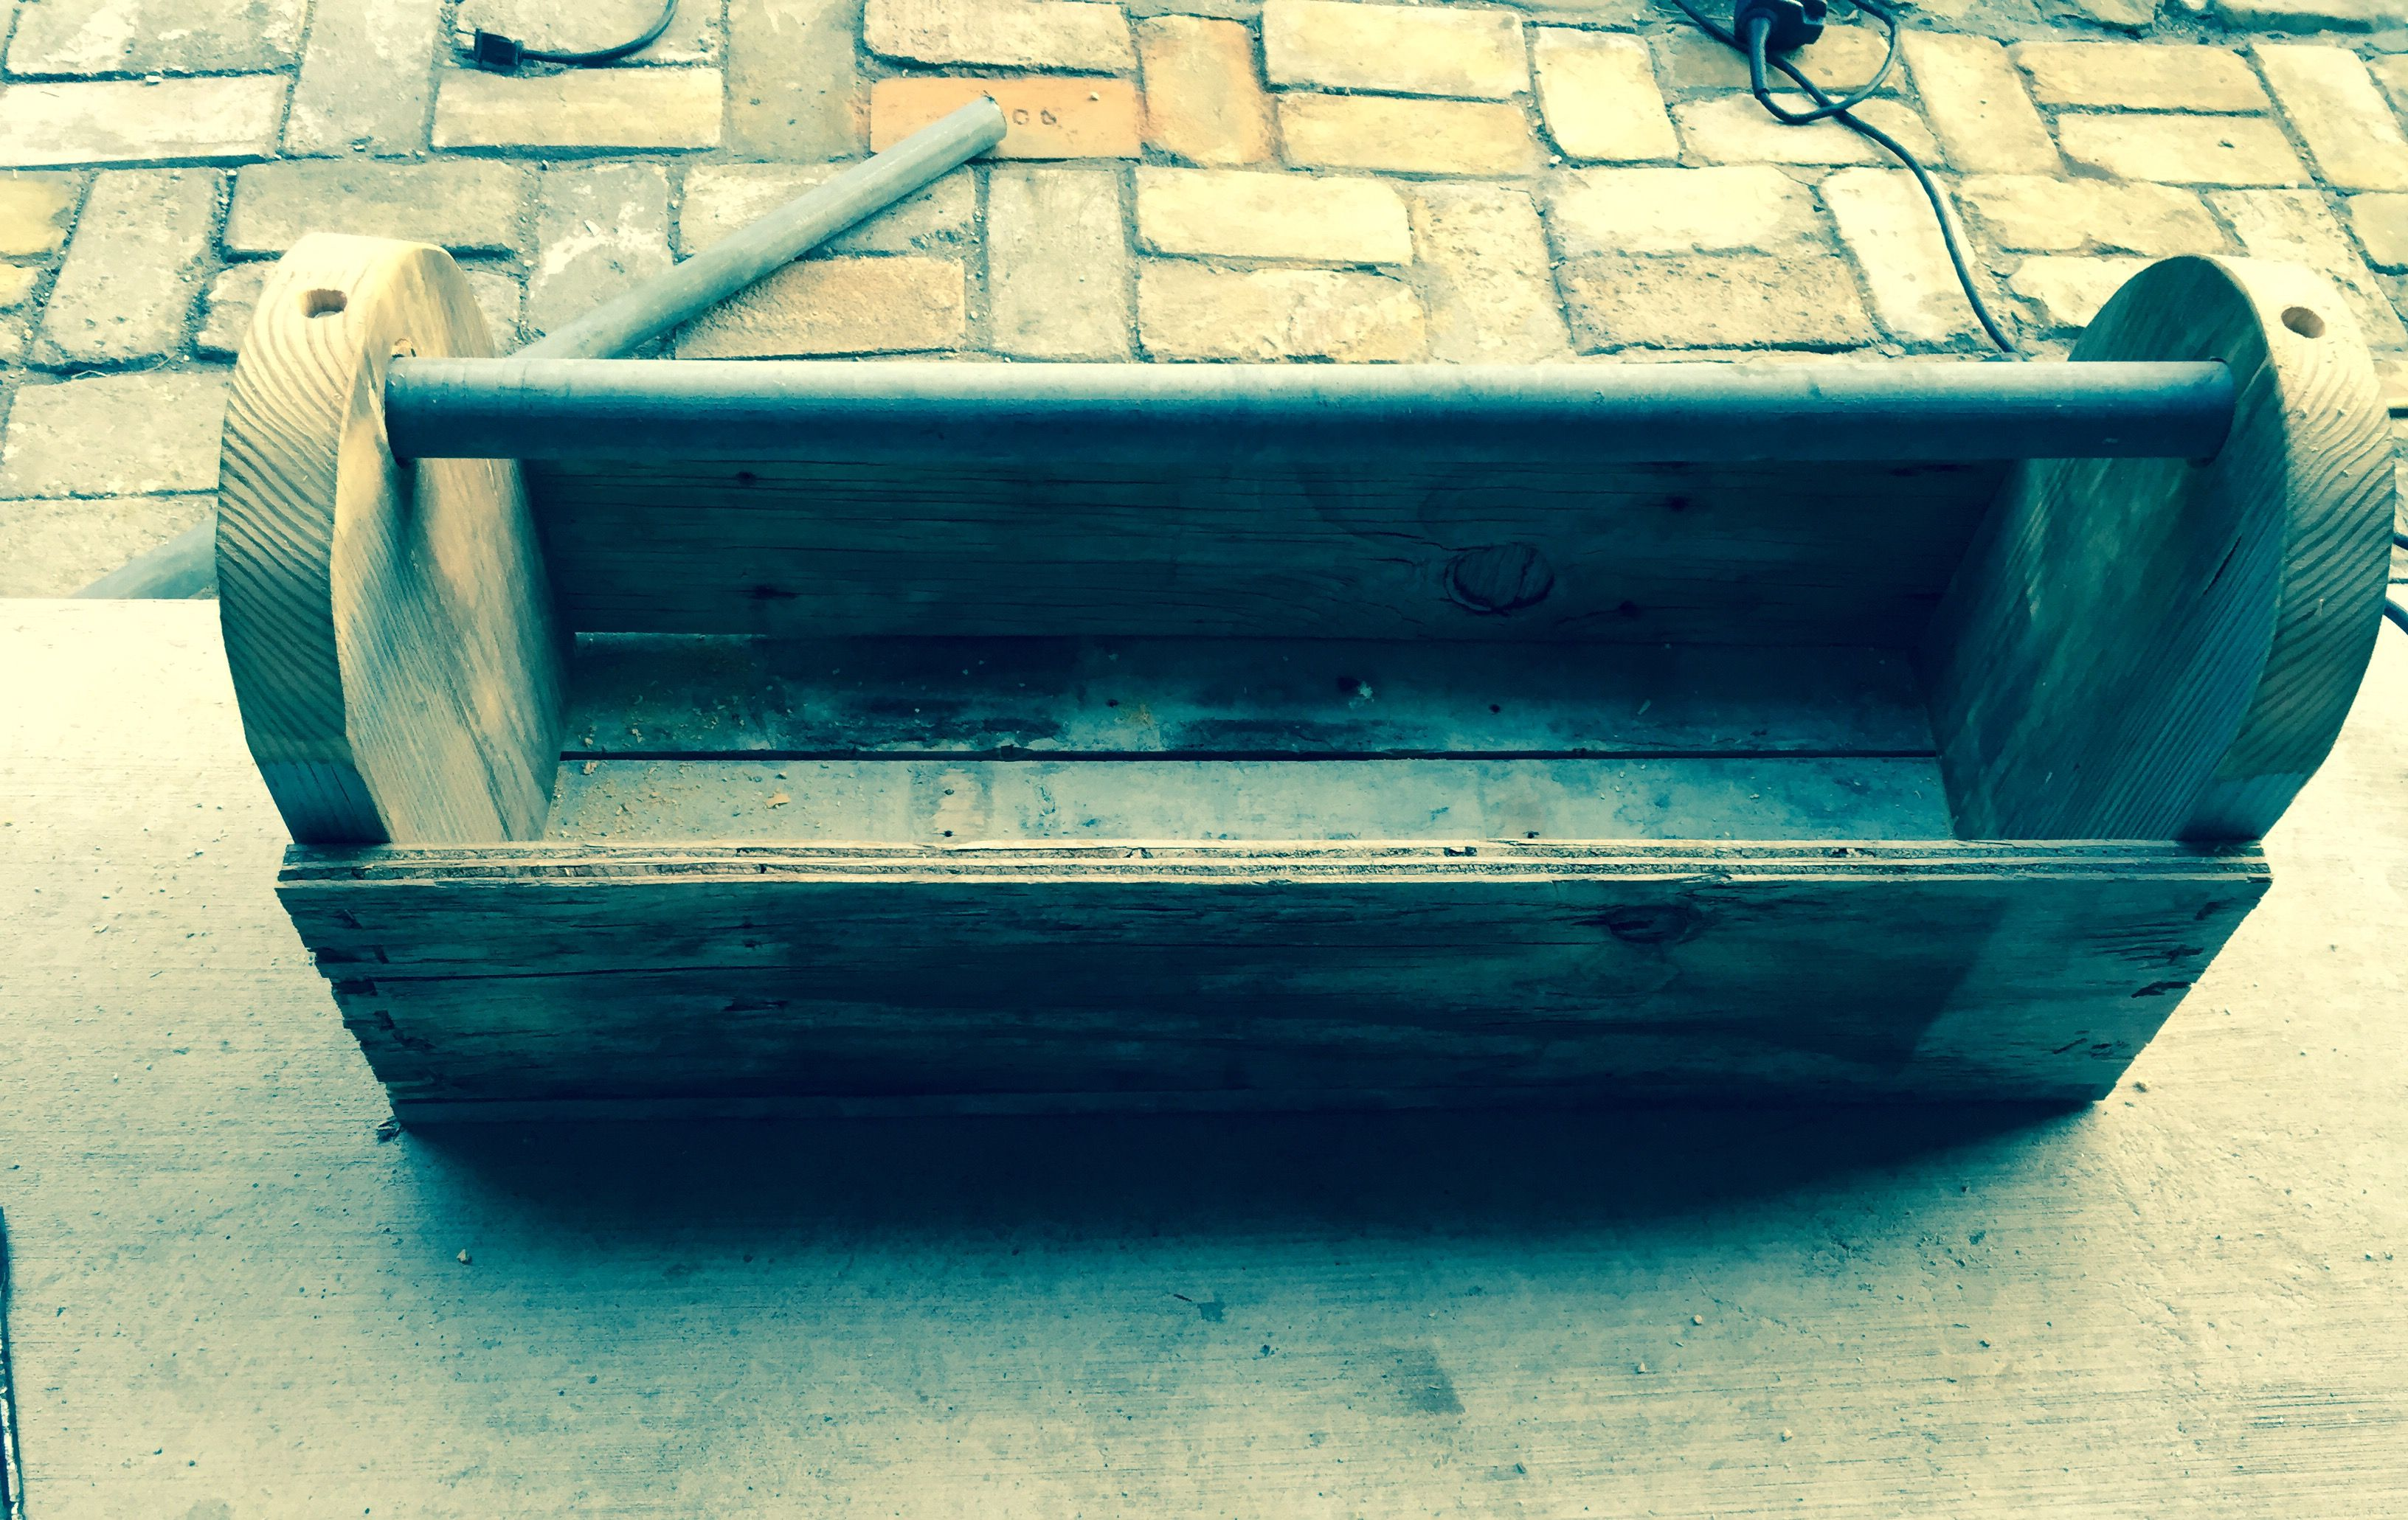 old world tool box. handcrafted from salvaged materials. contact me